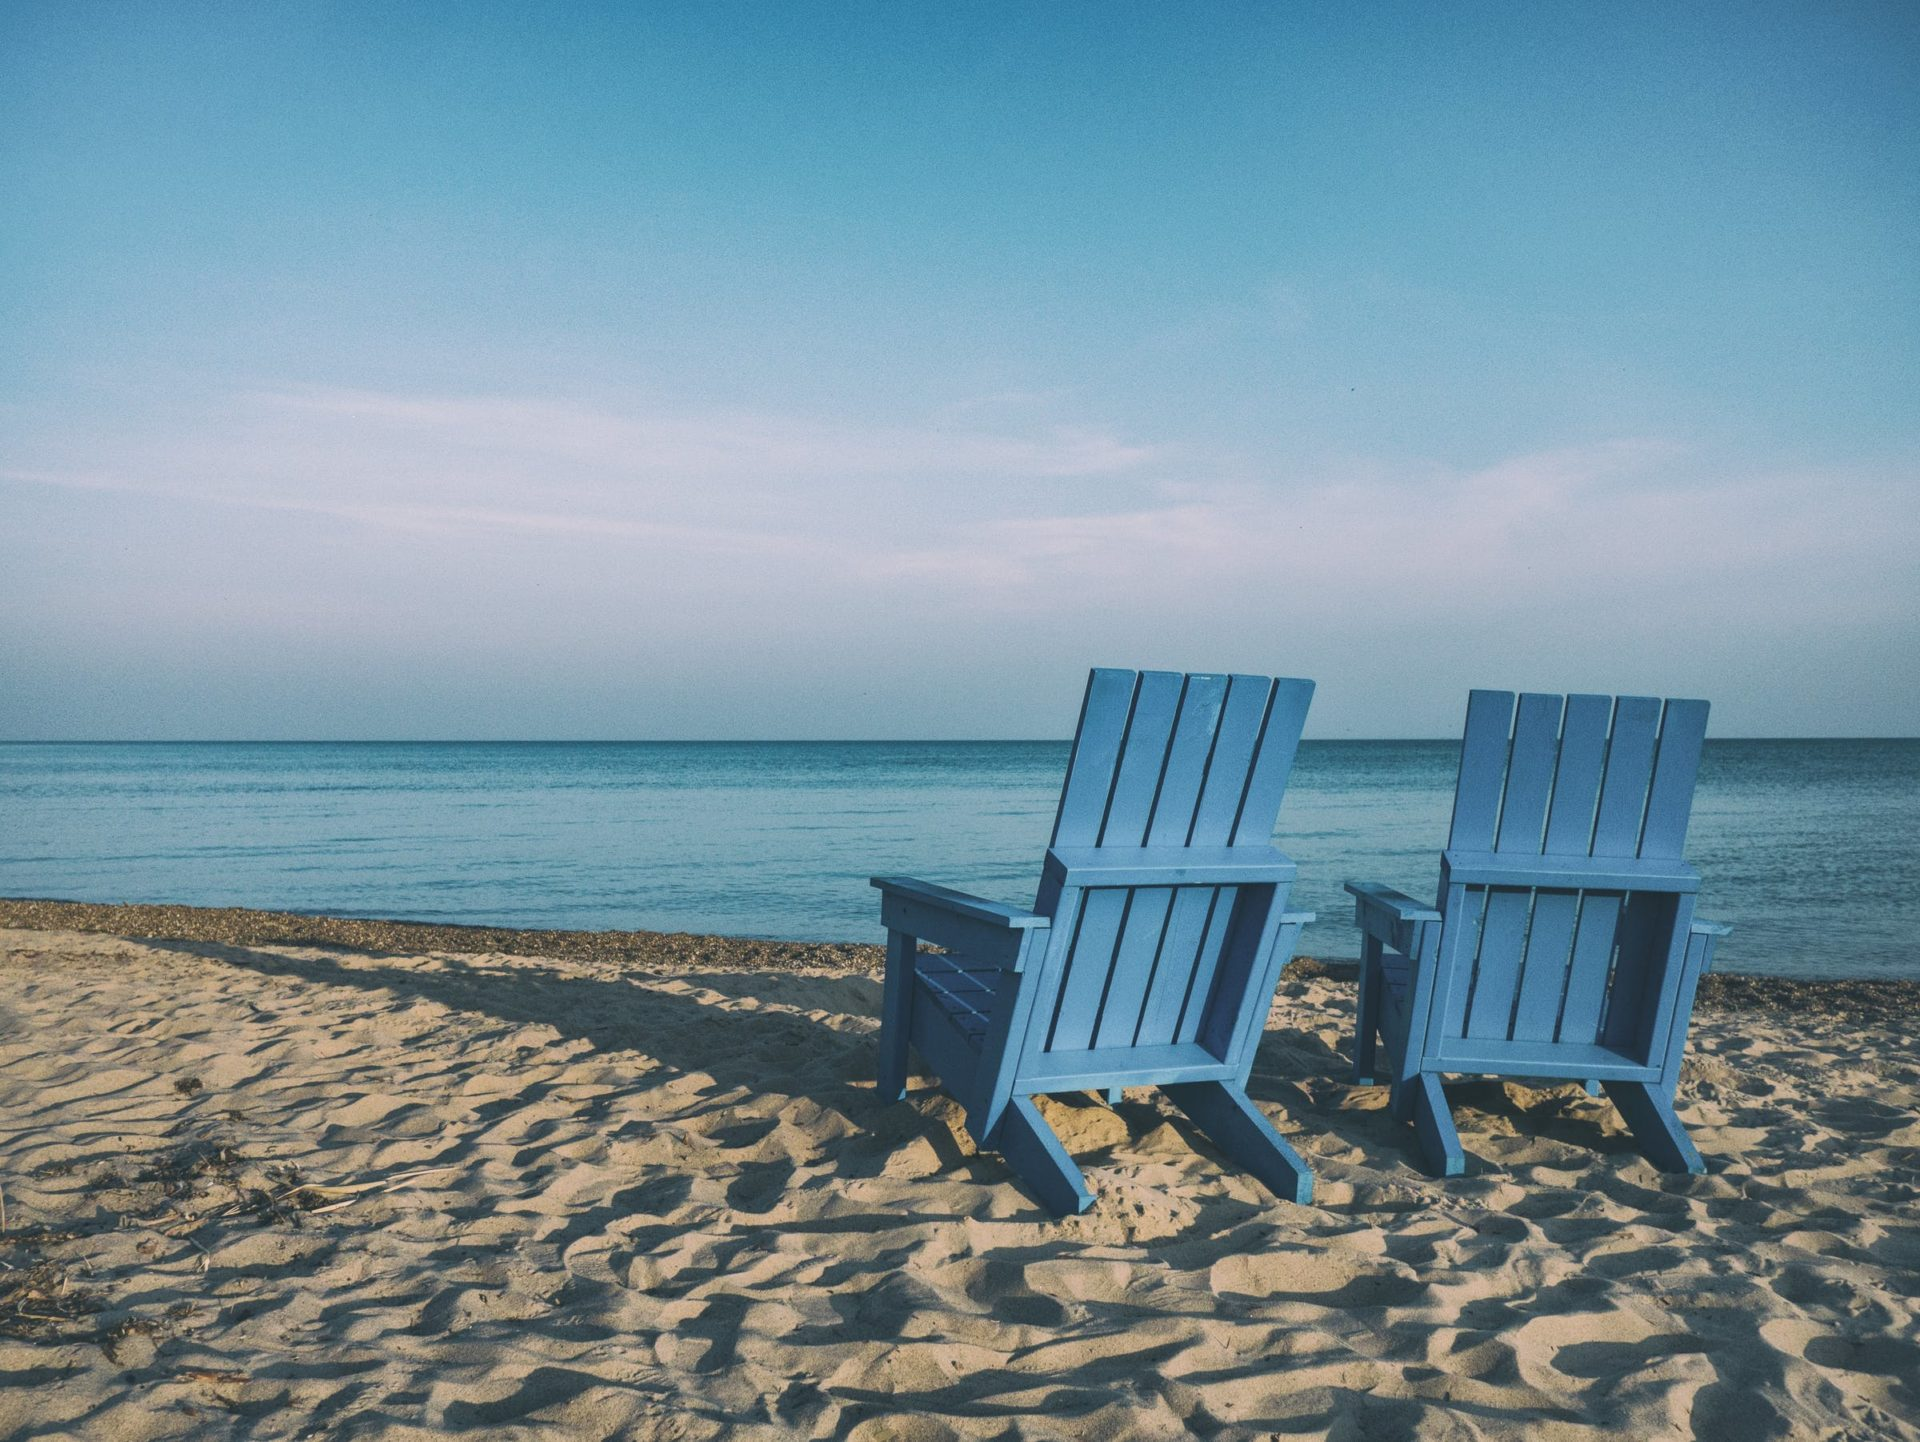 image of chairs at the beaching looking to the ocean